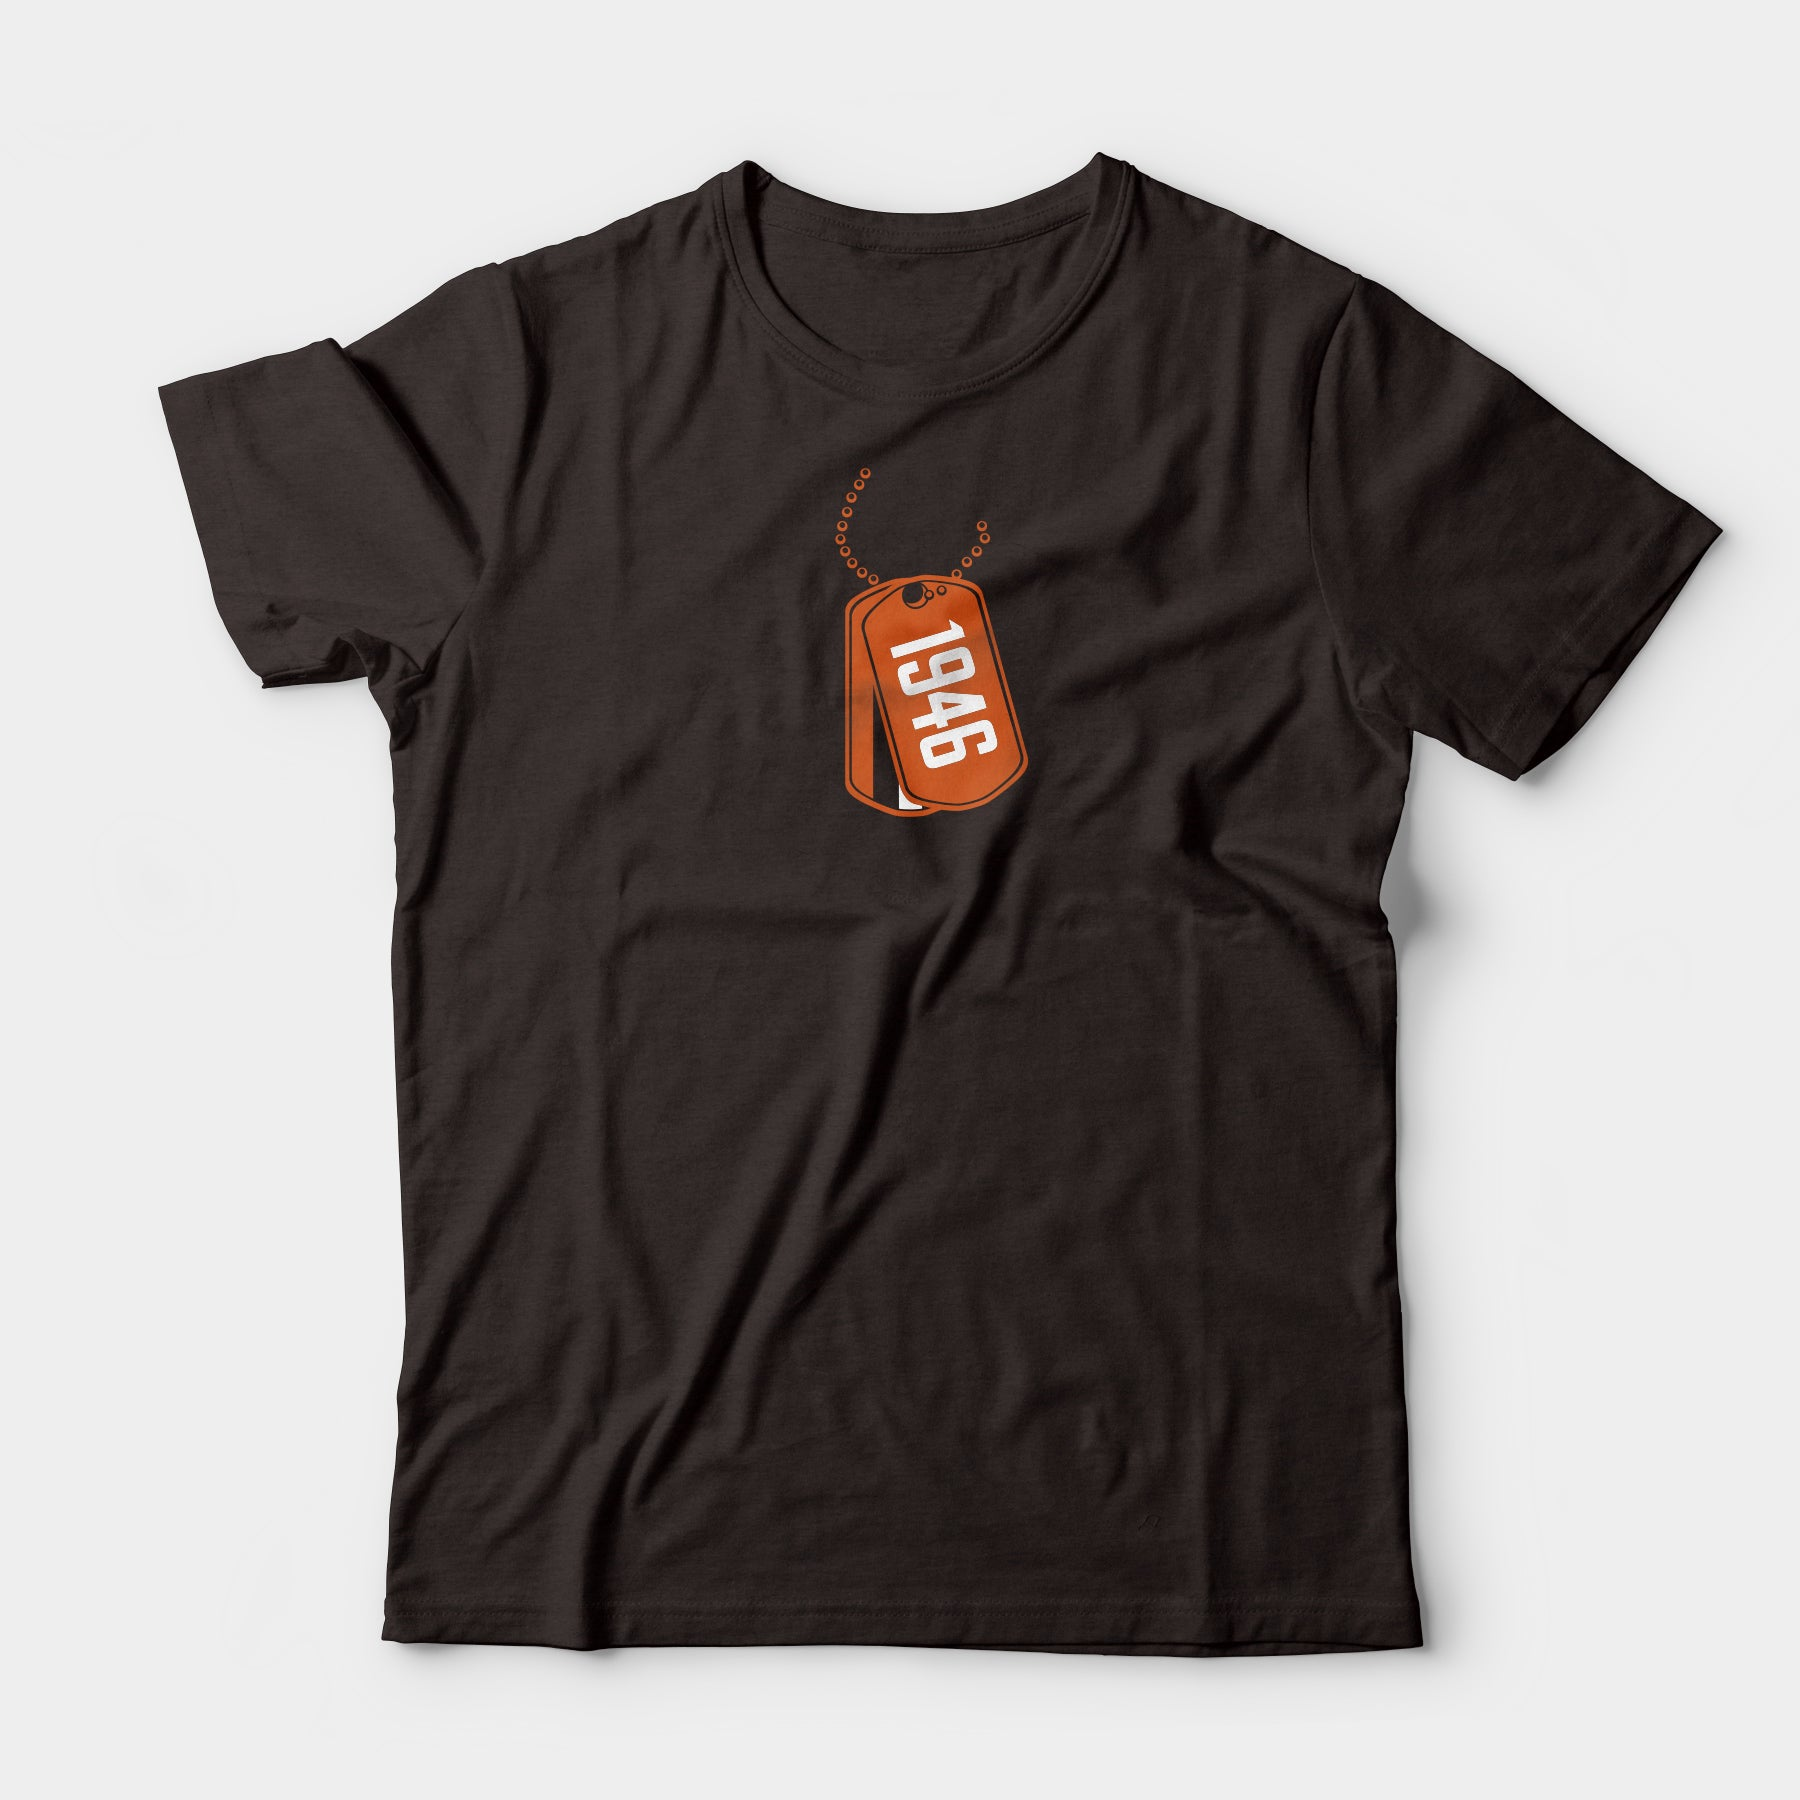 DAWGTAG Tee, Brown